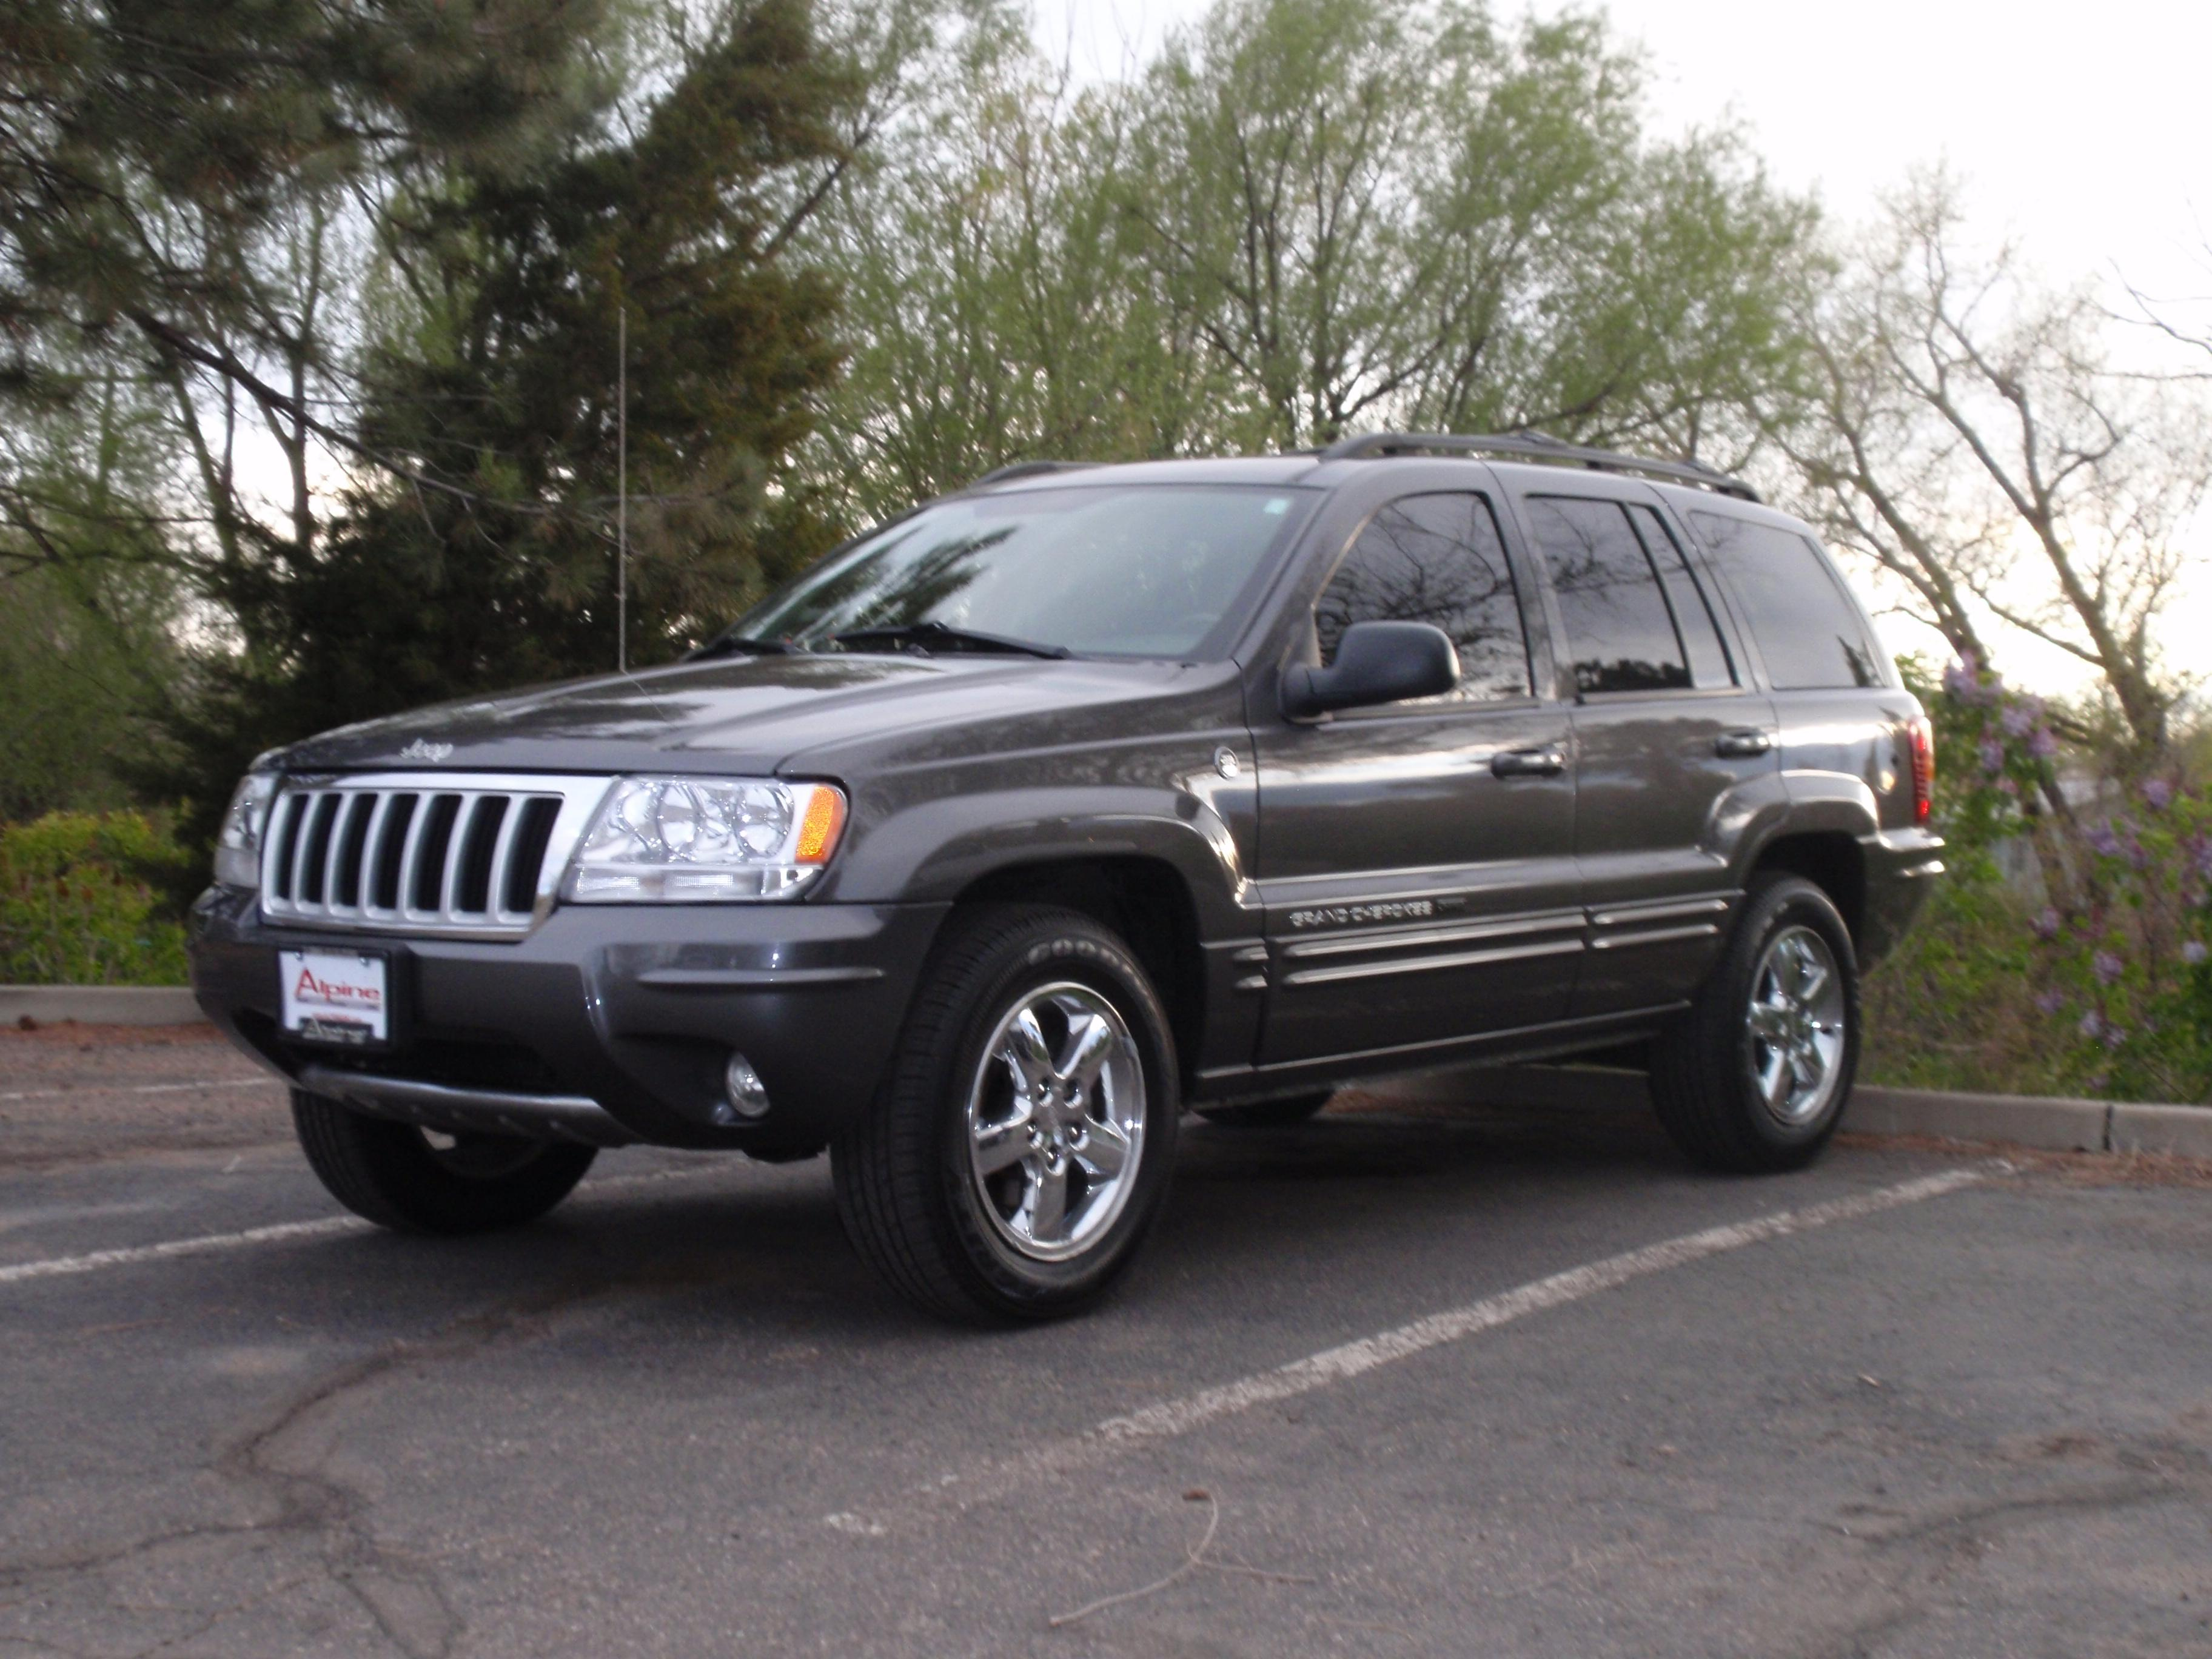 JackT's 2004 Jeep Grand Cherokee